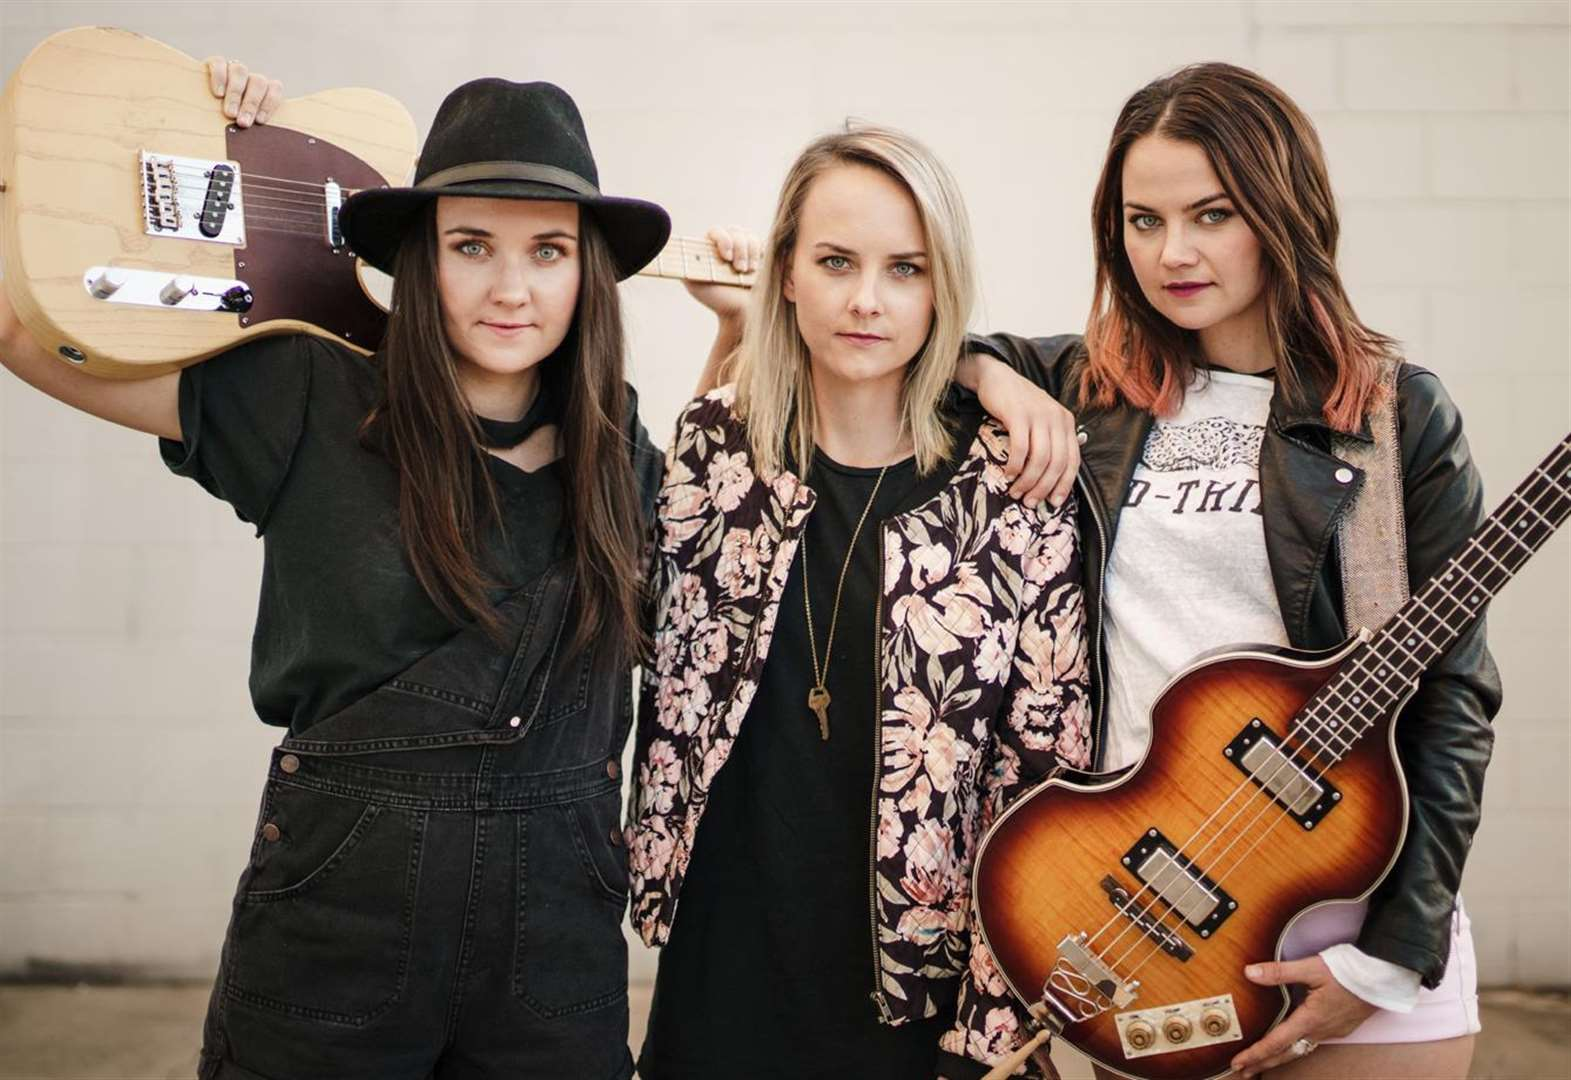 MUSIC REVIEW: Sisters taking back control to impress on Little Mix tour